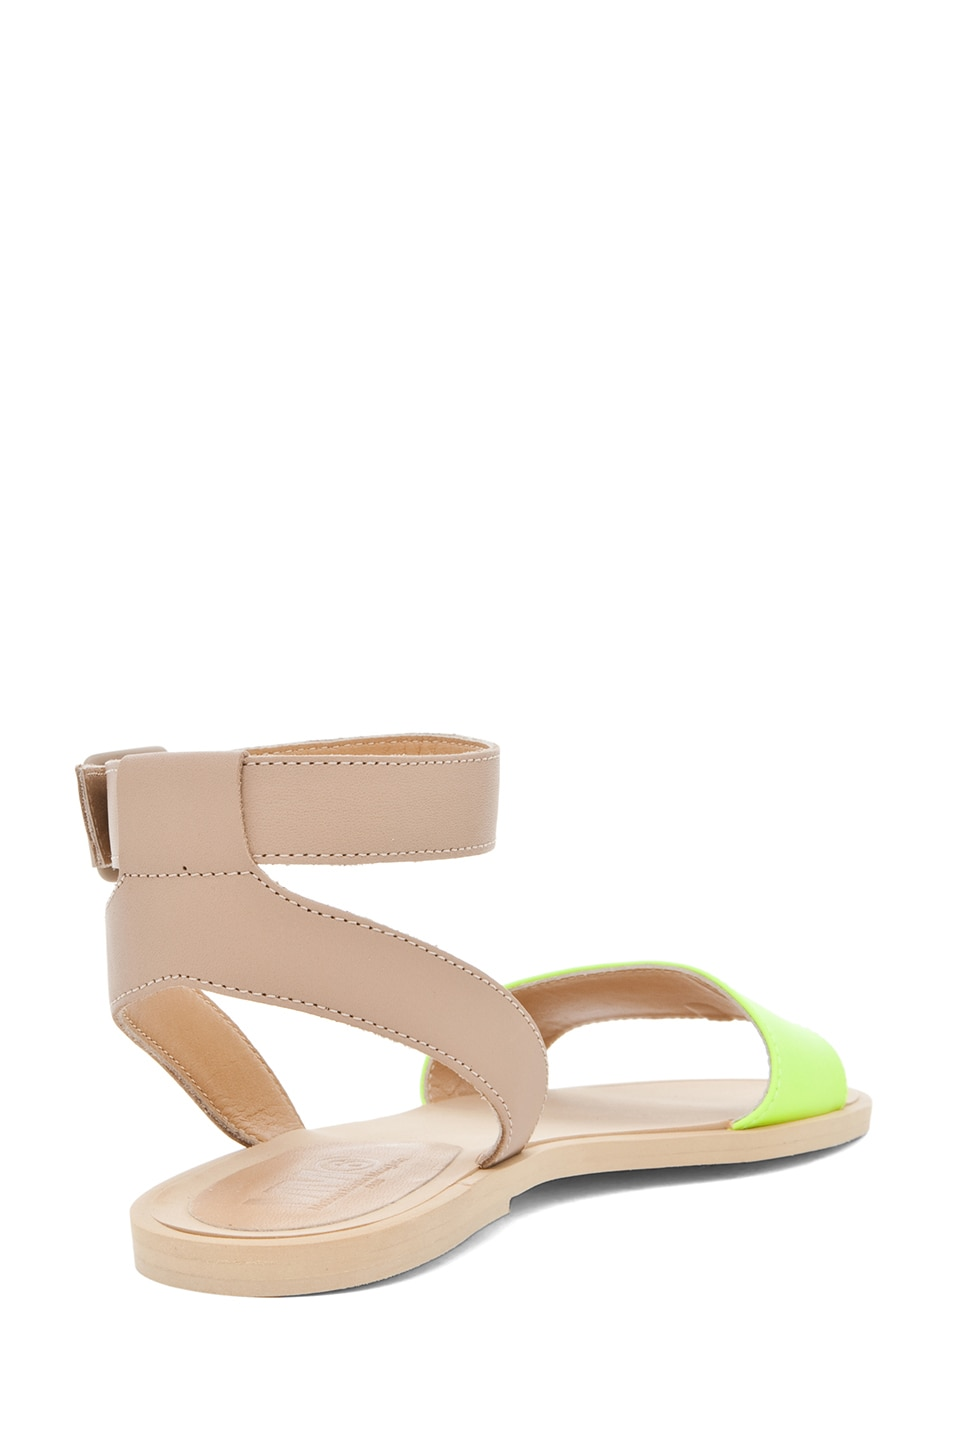 Image 3 of MM6 Maison Margiela Ankle Strap Sandal in Yellow & Beige